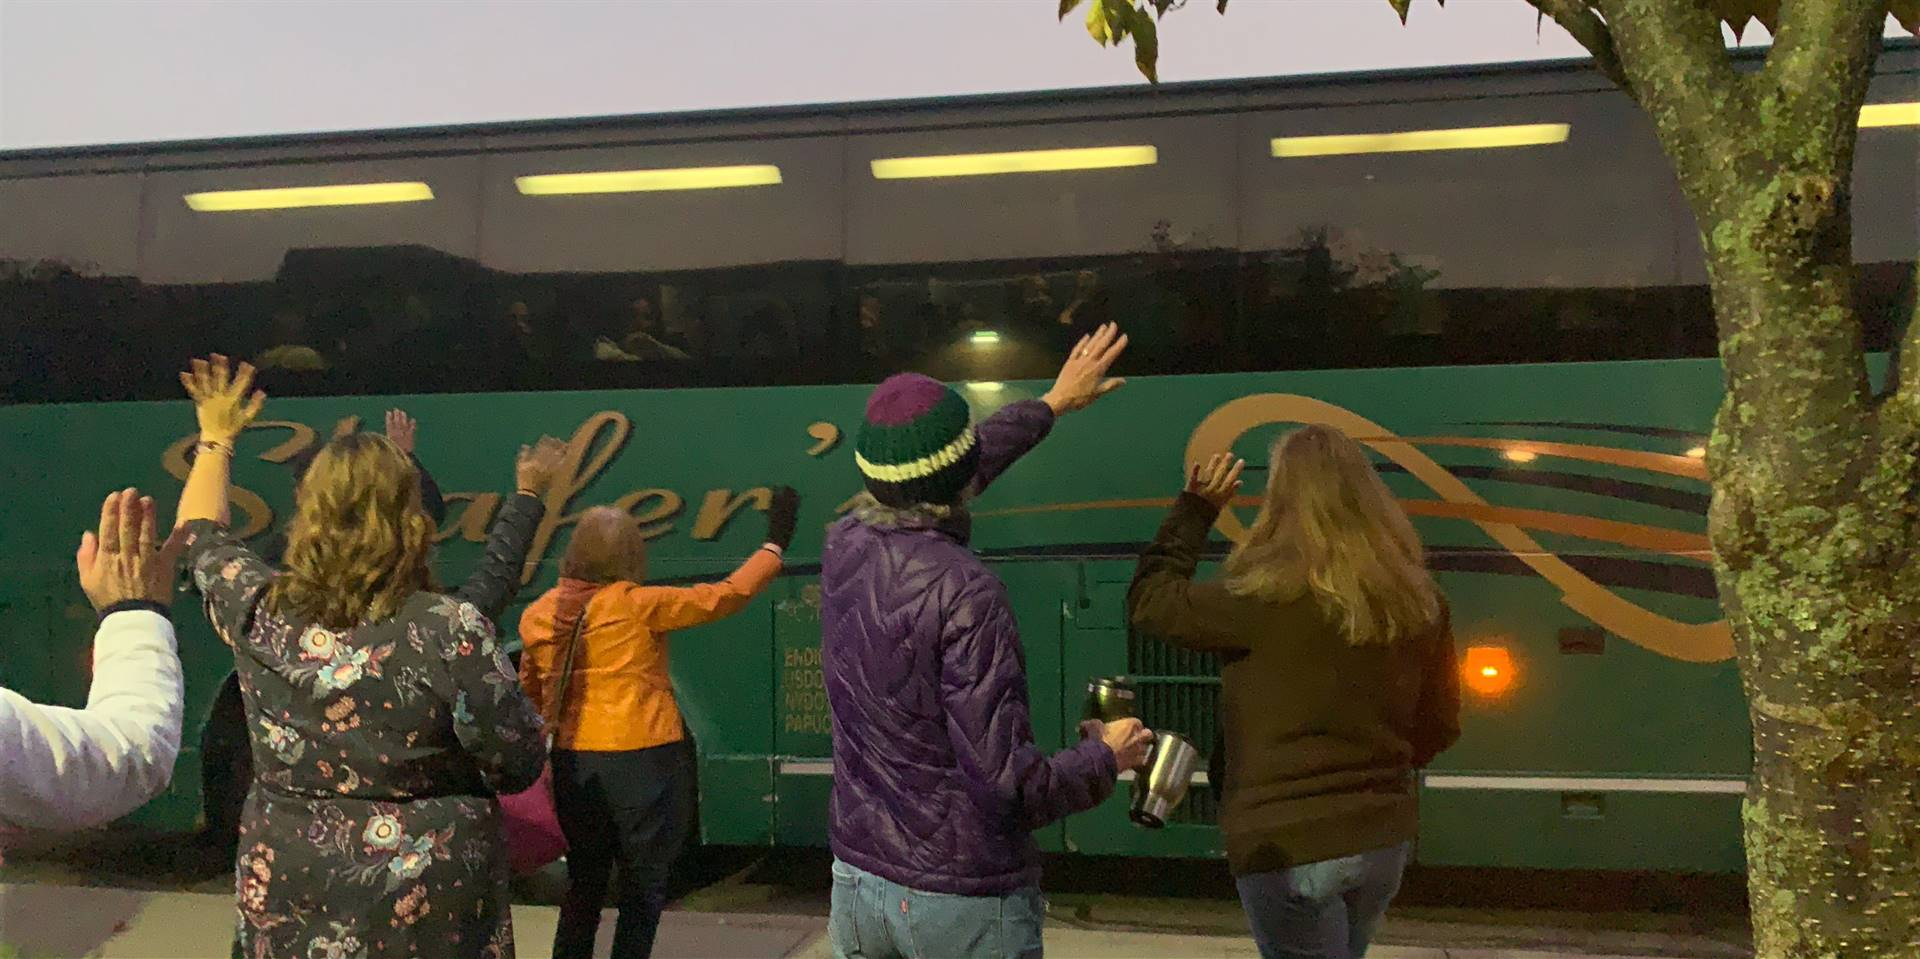 people waving to bus